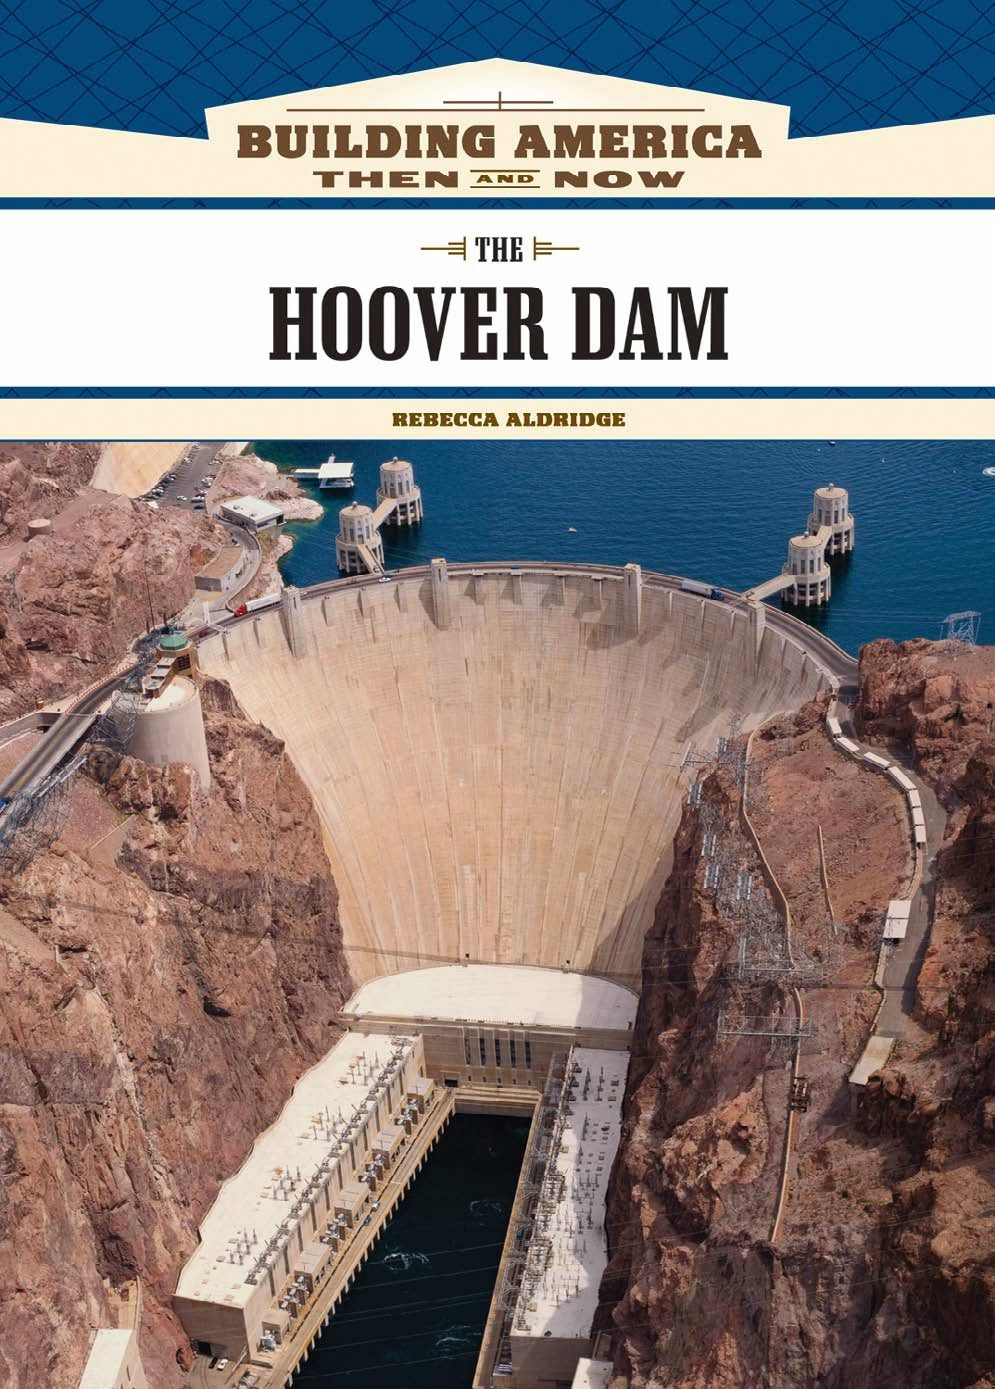 Book: The Hoover Dam (Building America Now and Then) by Rebecca Aldbridge